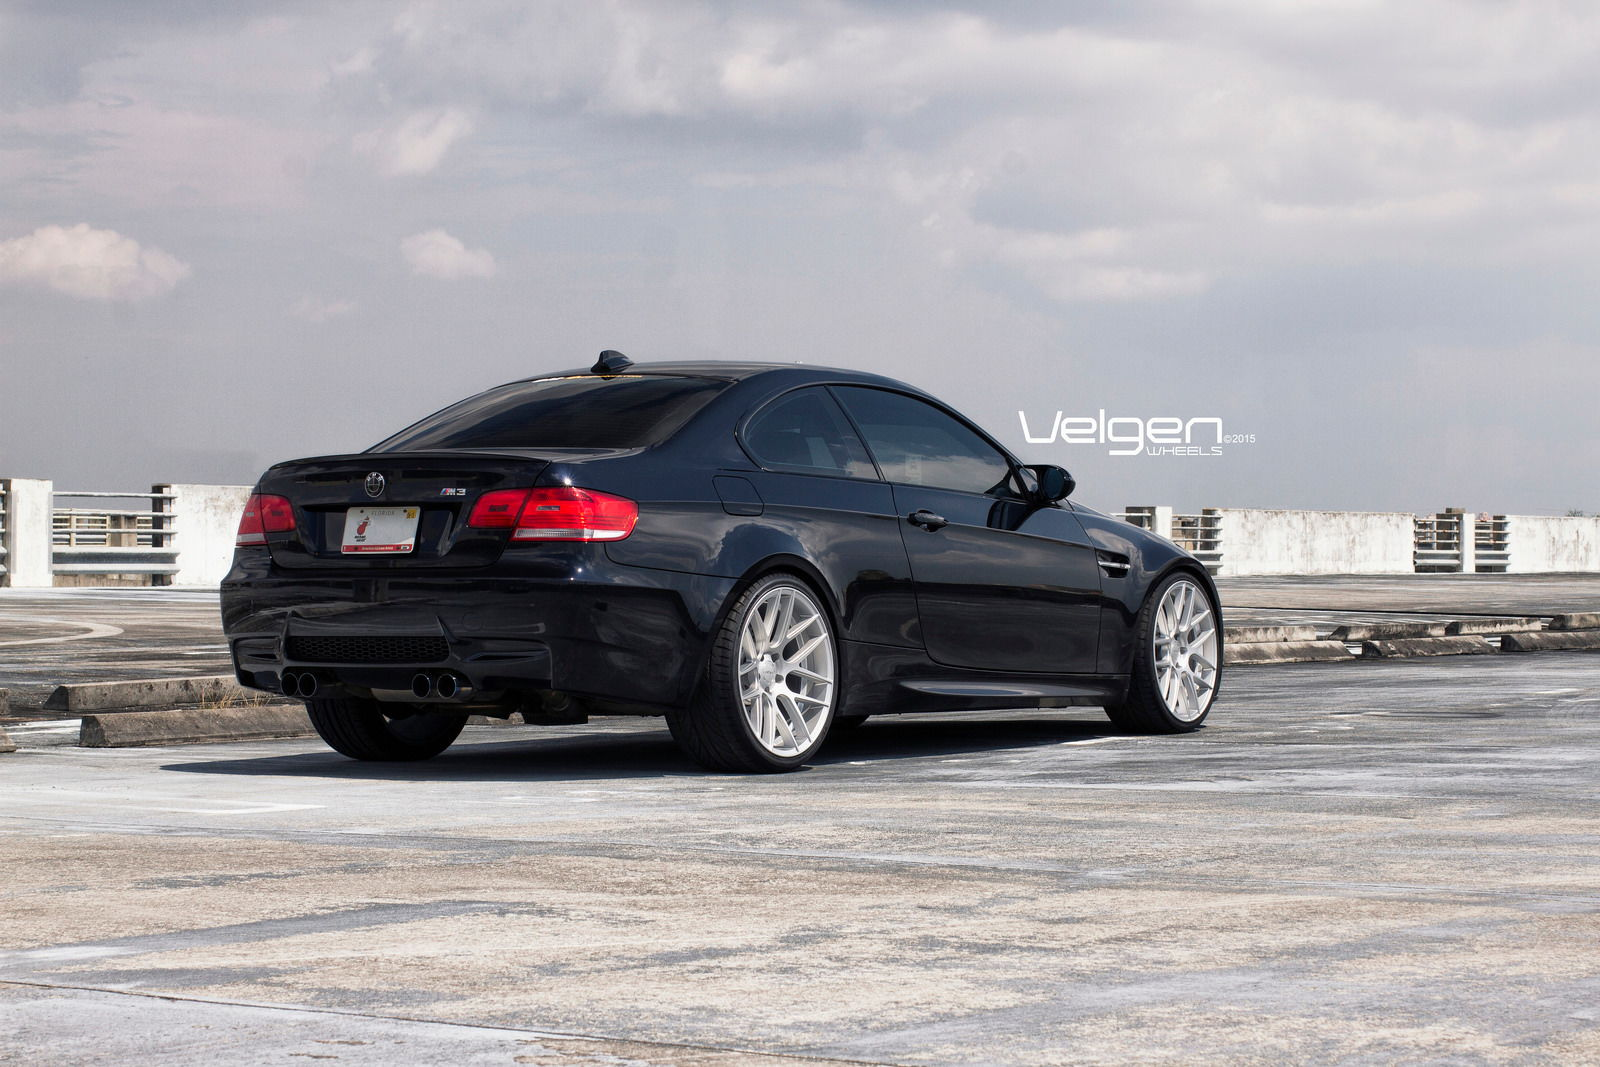 bmw e92 m3 on velgen wheels vmb7 6speedonline porsche forum and luxury car resource. Black Bedroom Furniture Sets. Home Design Ideas